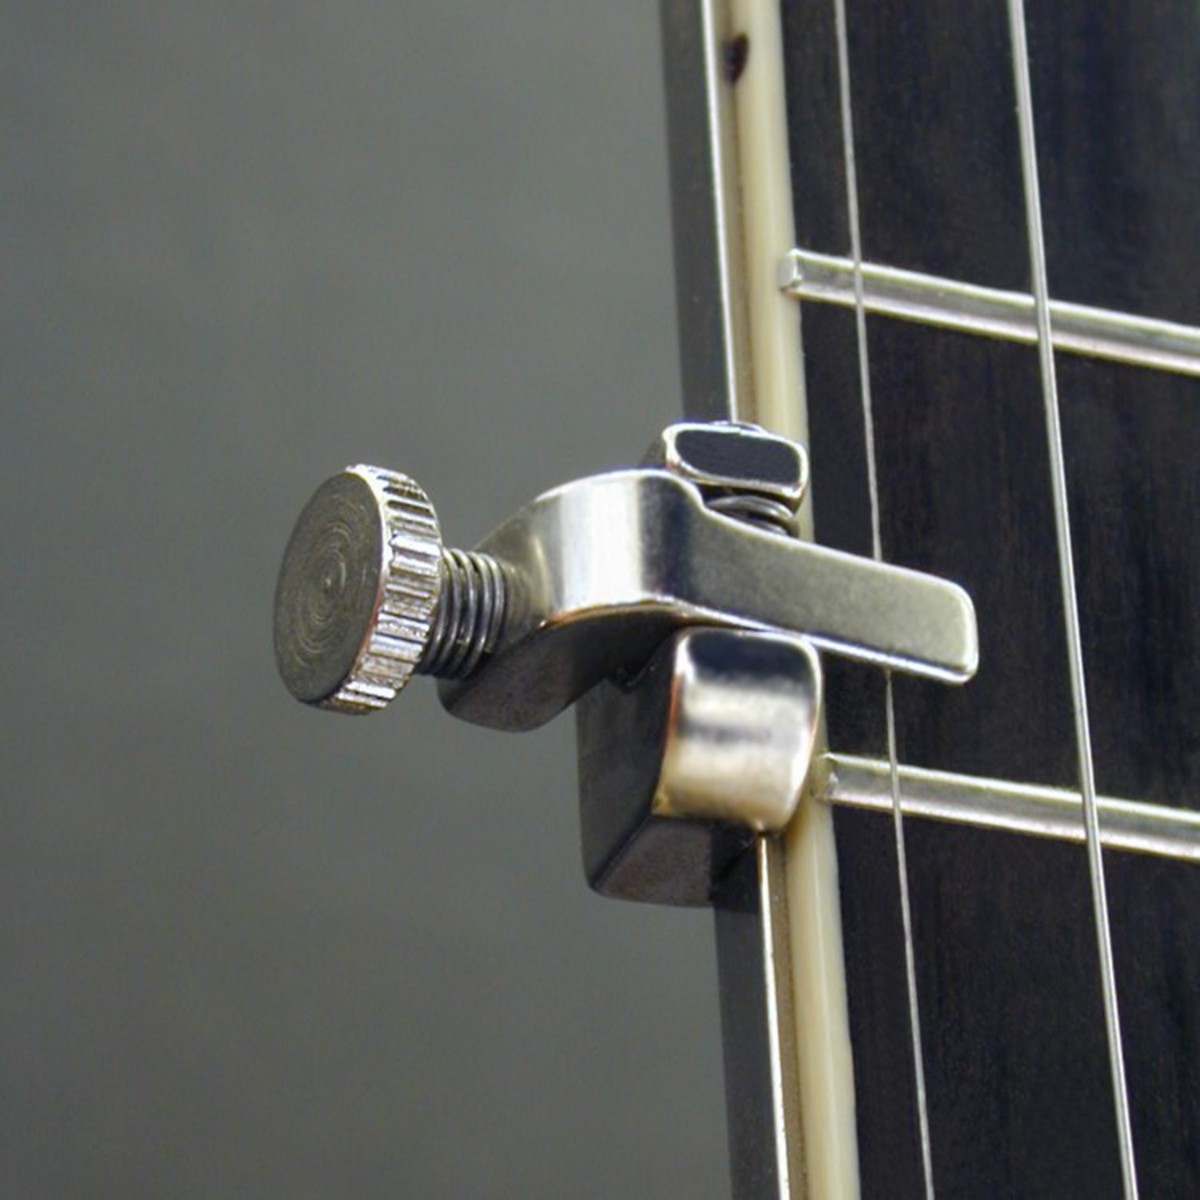 shubb fslb banjo long 5th string capo nickel plated at gear4music. Black Bedroom Furniture Sets. Home Design Ideas